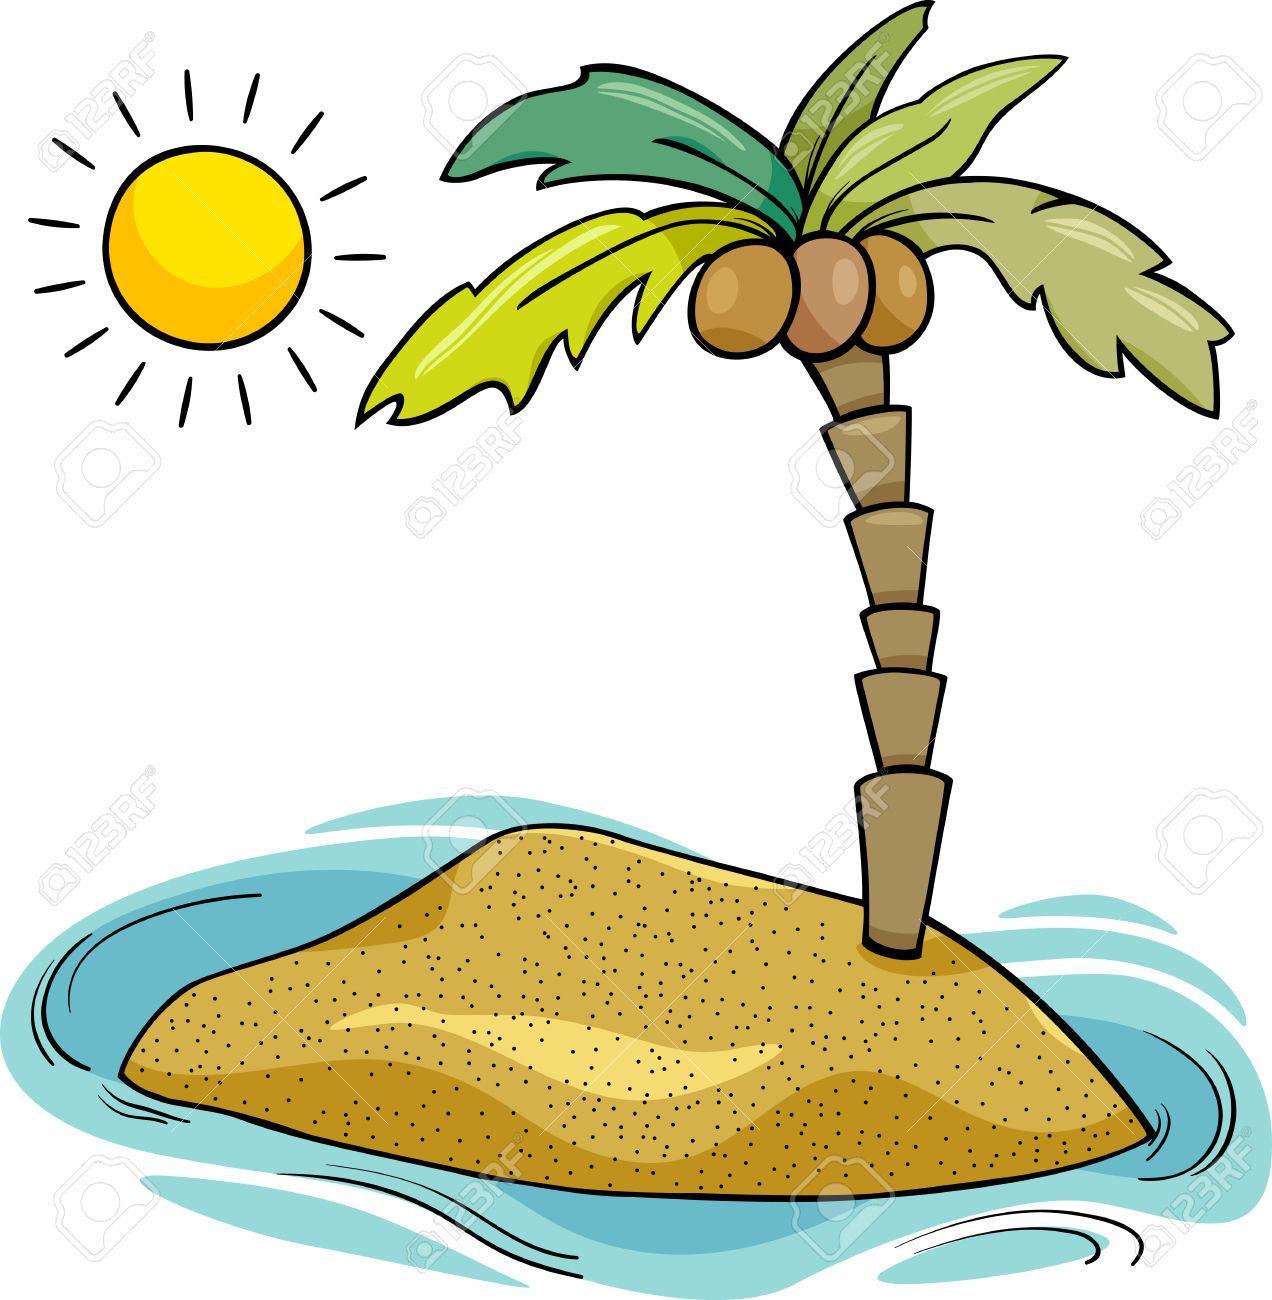 Island clipart #16, Download drawings